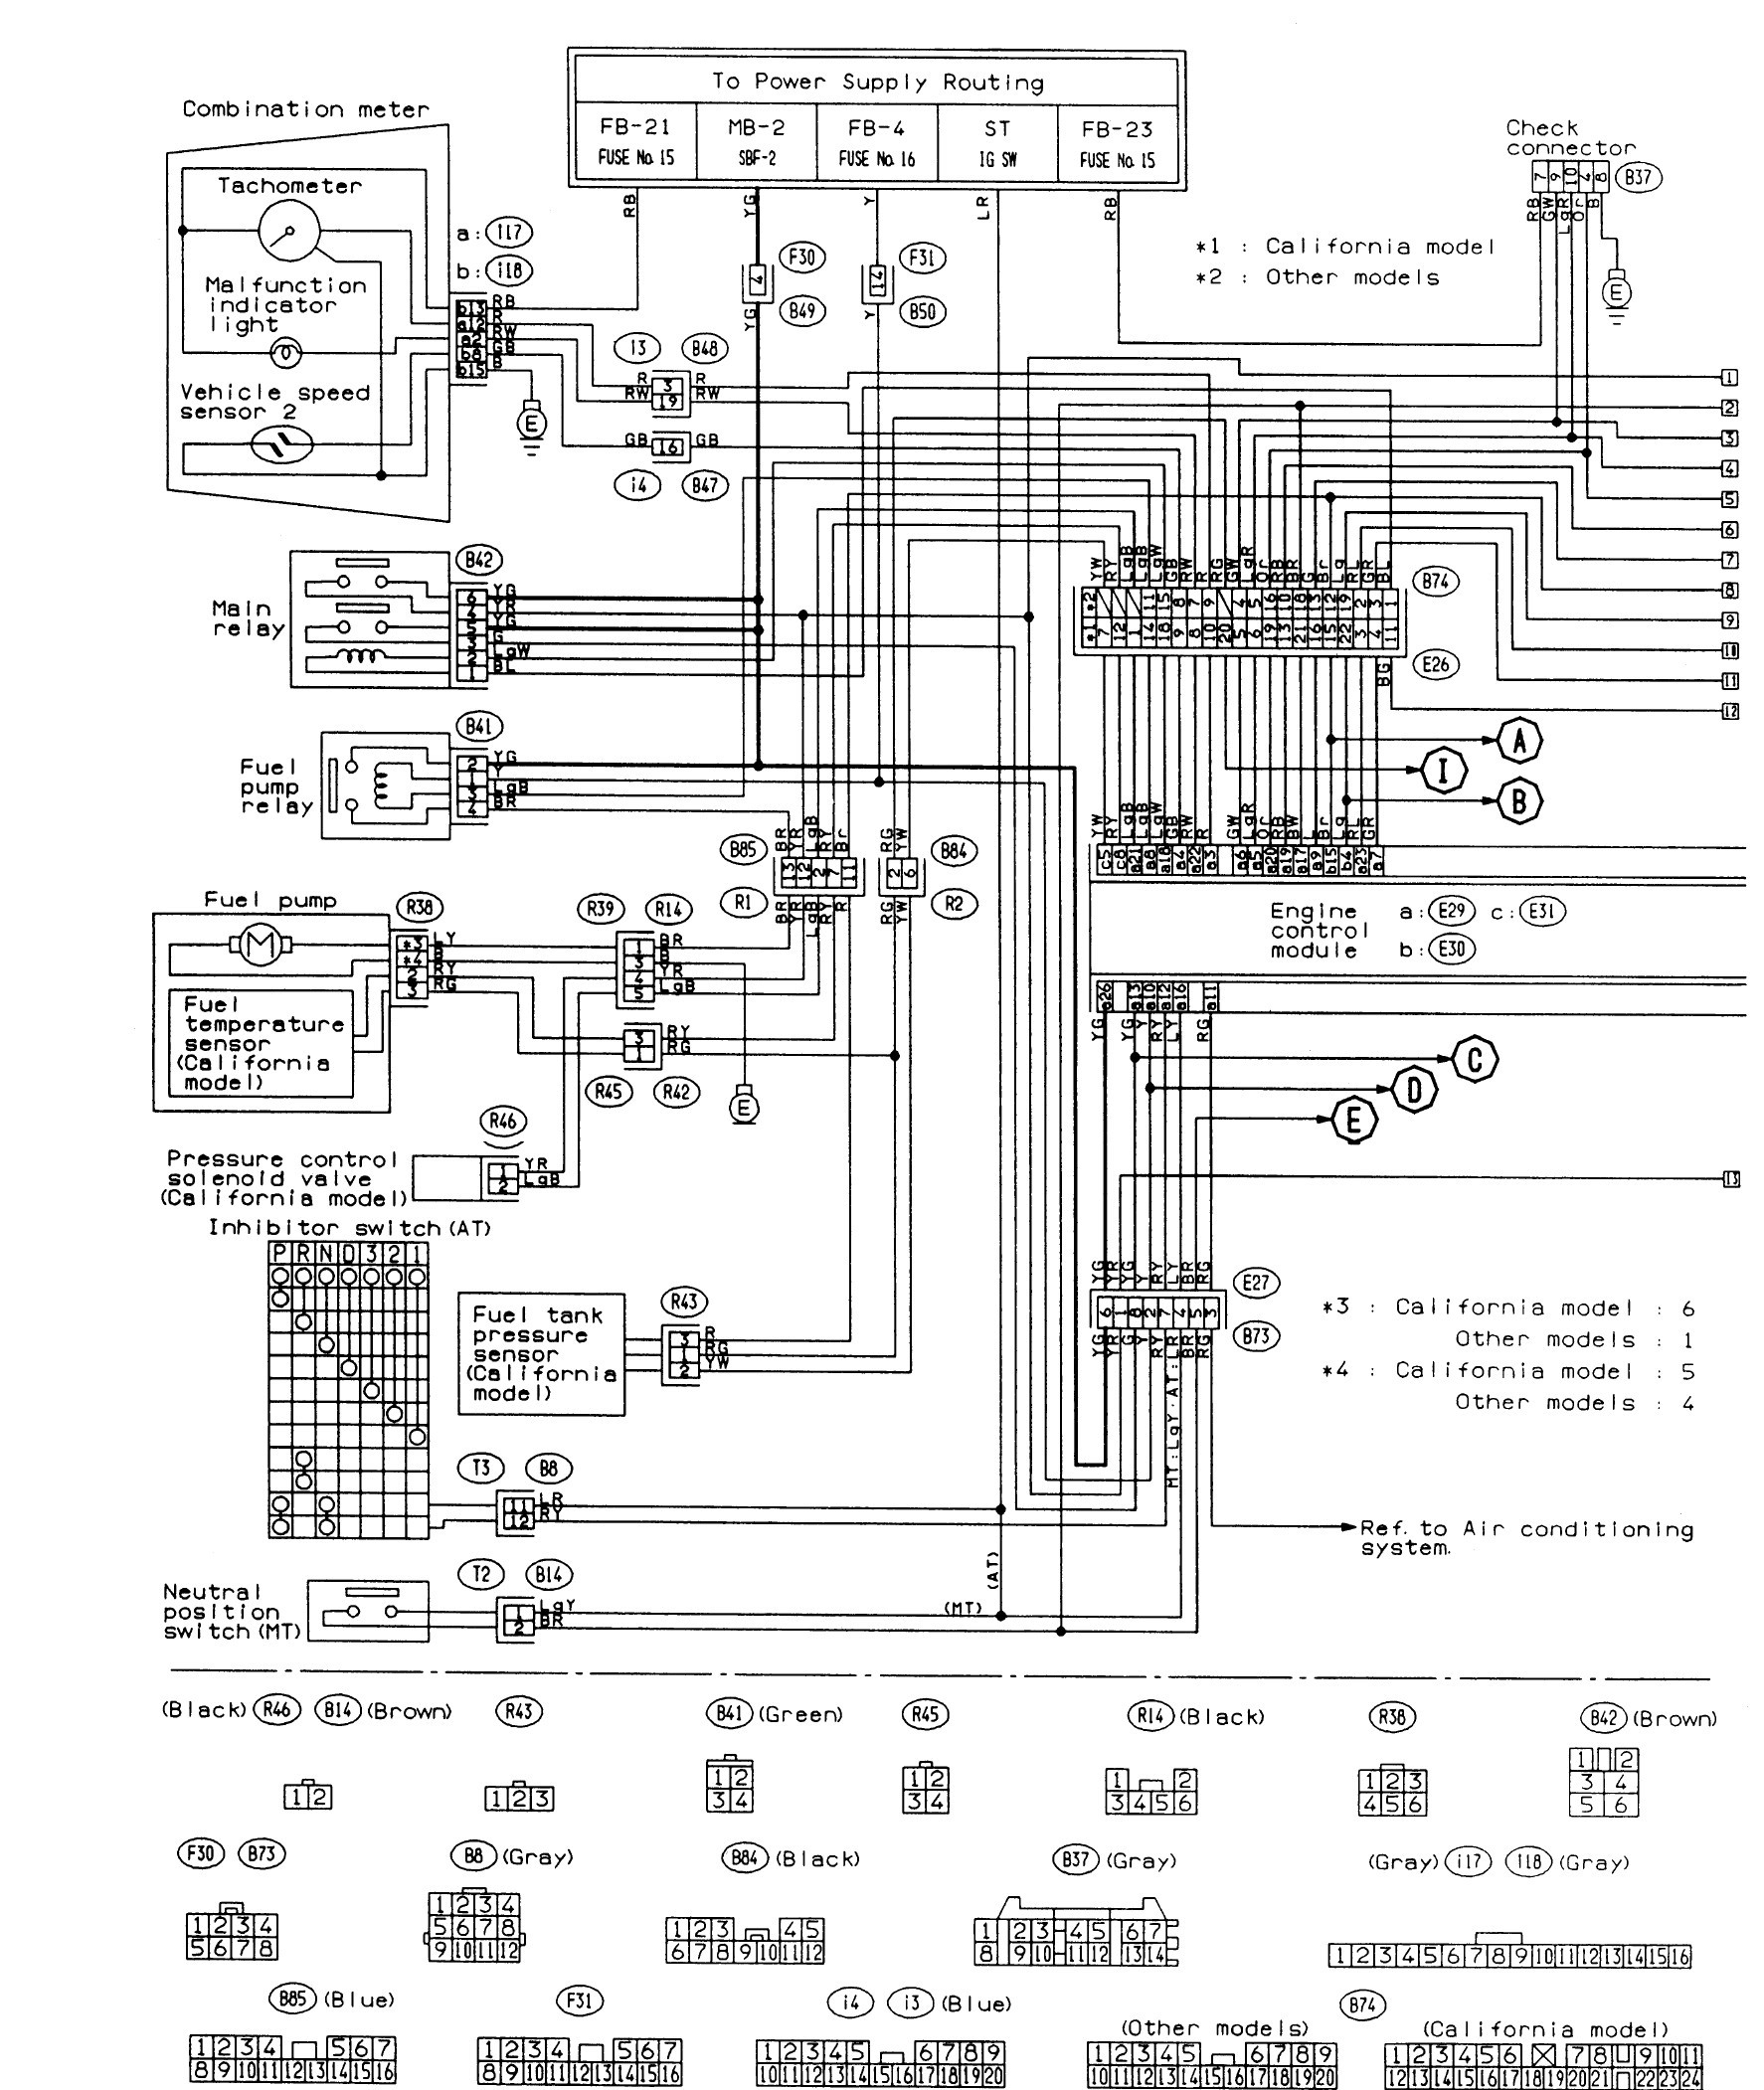 Subaru hub wiring diagramhub wiring diagrams subaru engine compartment wiring diagram 1995 wiring library subaru hub wiring diagram wiring library wire diagram asfbconference2016 Image collections